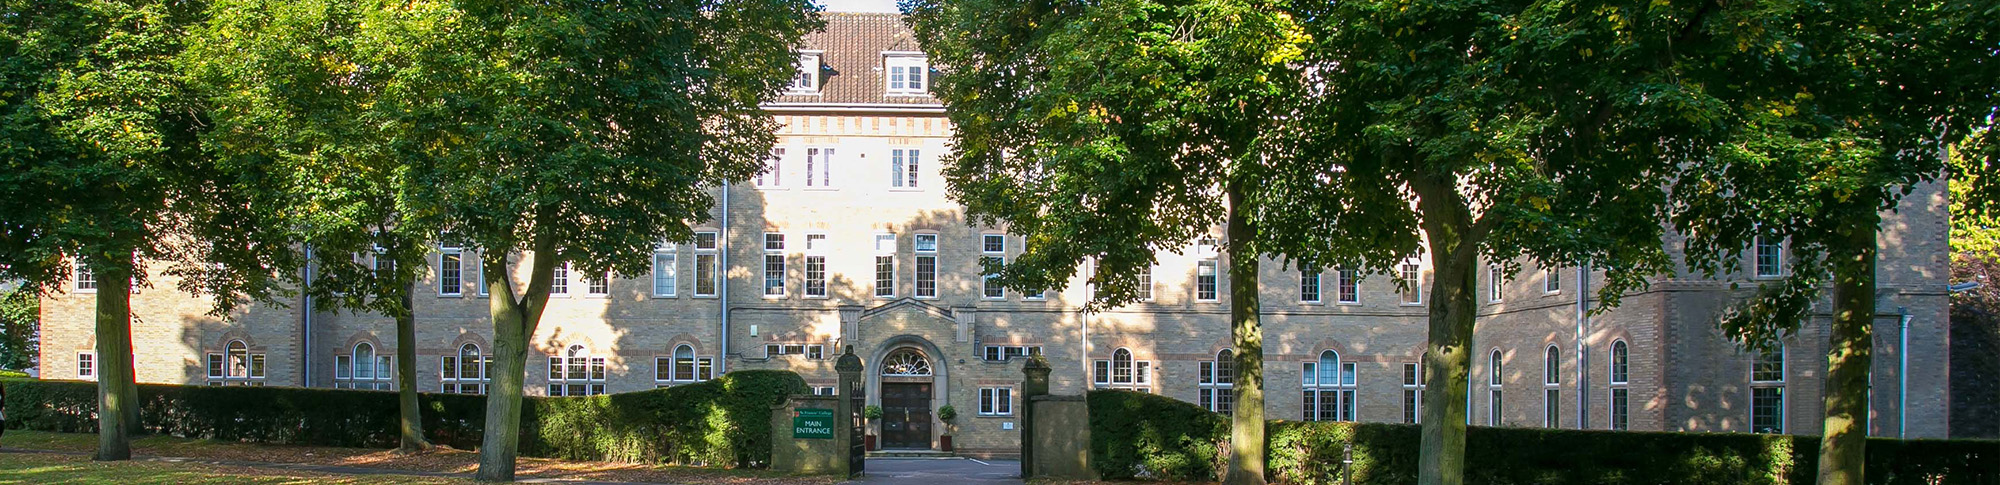 UK-Boarding-Schools-St-Francis-College-Header